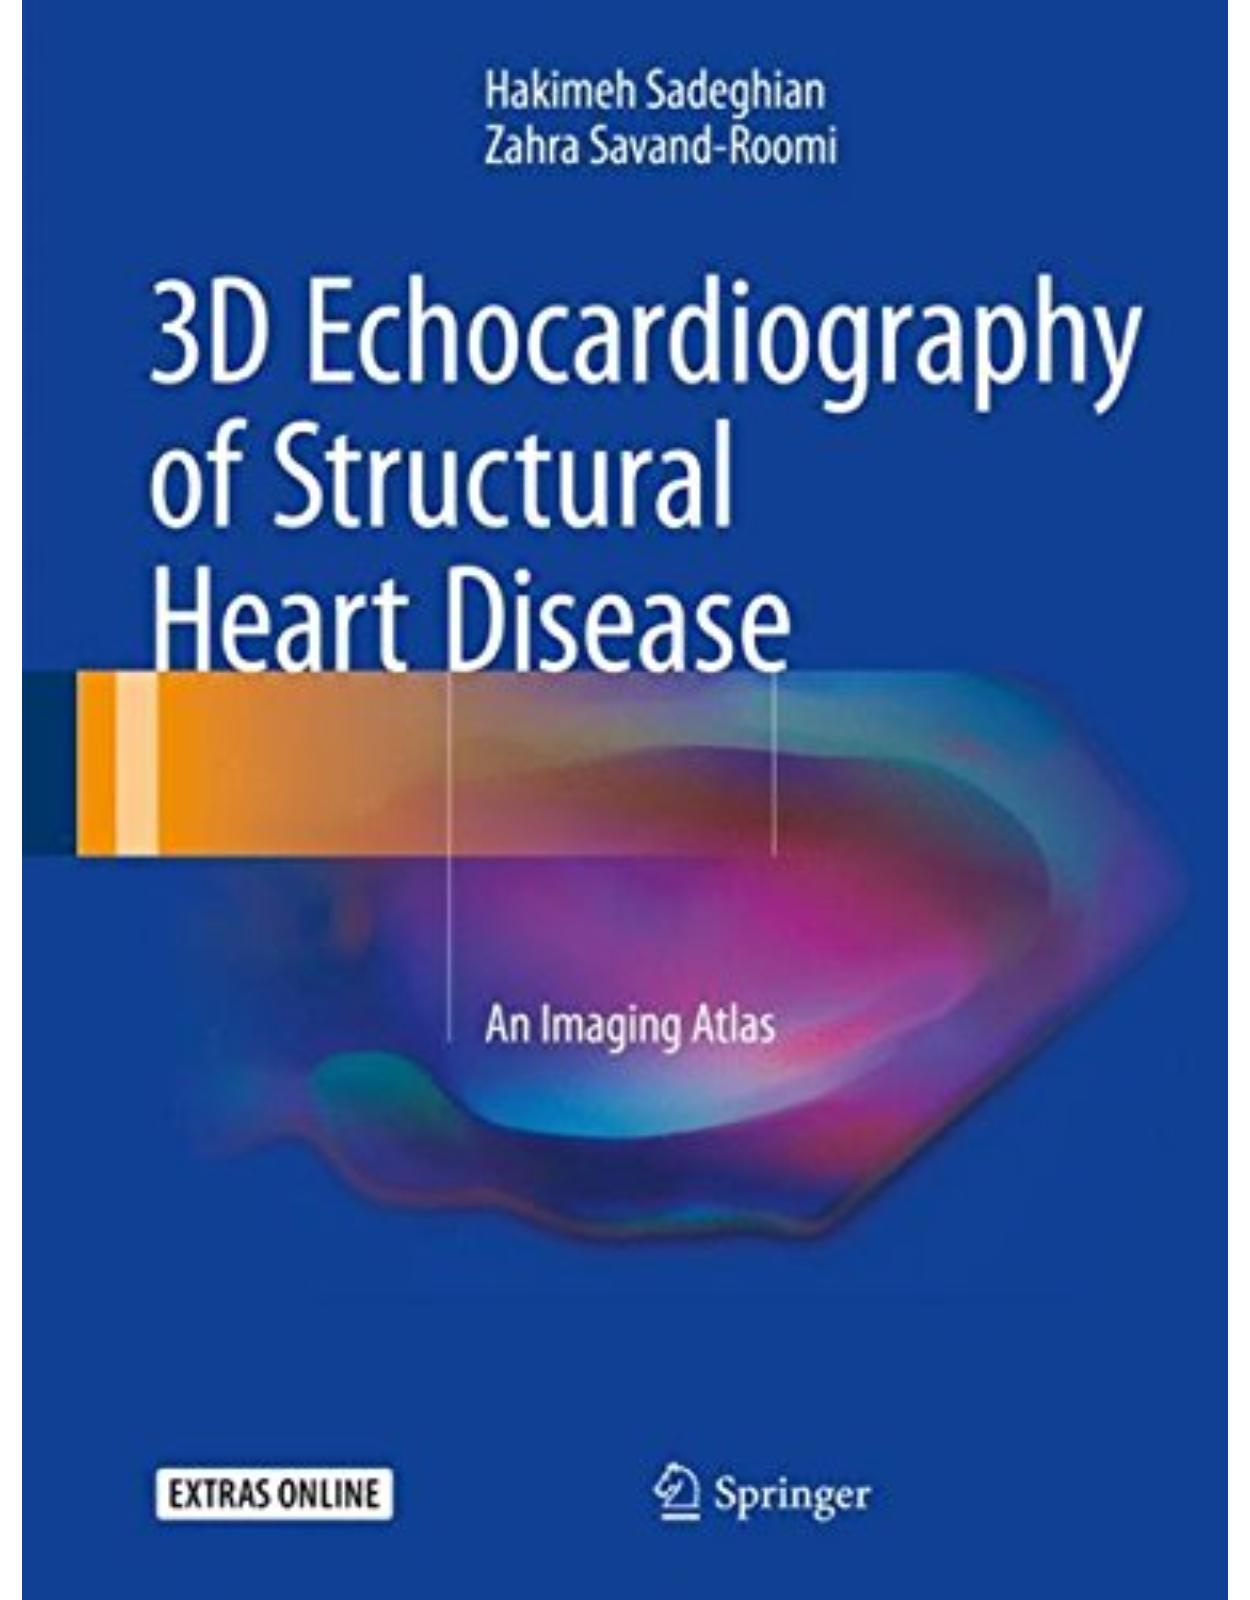 3D Echocardiography of Structural Heart Disease: An Imaging Atlas